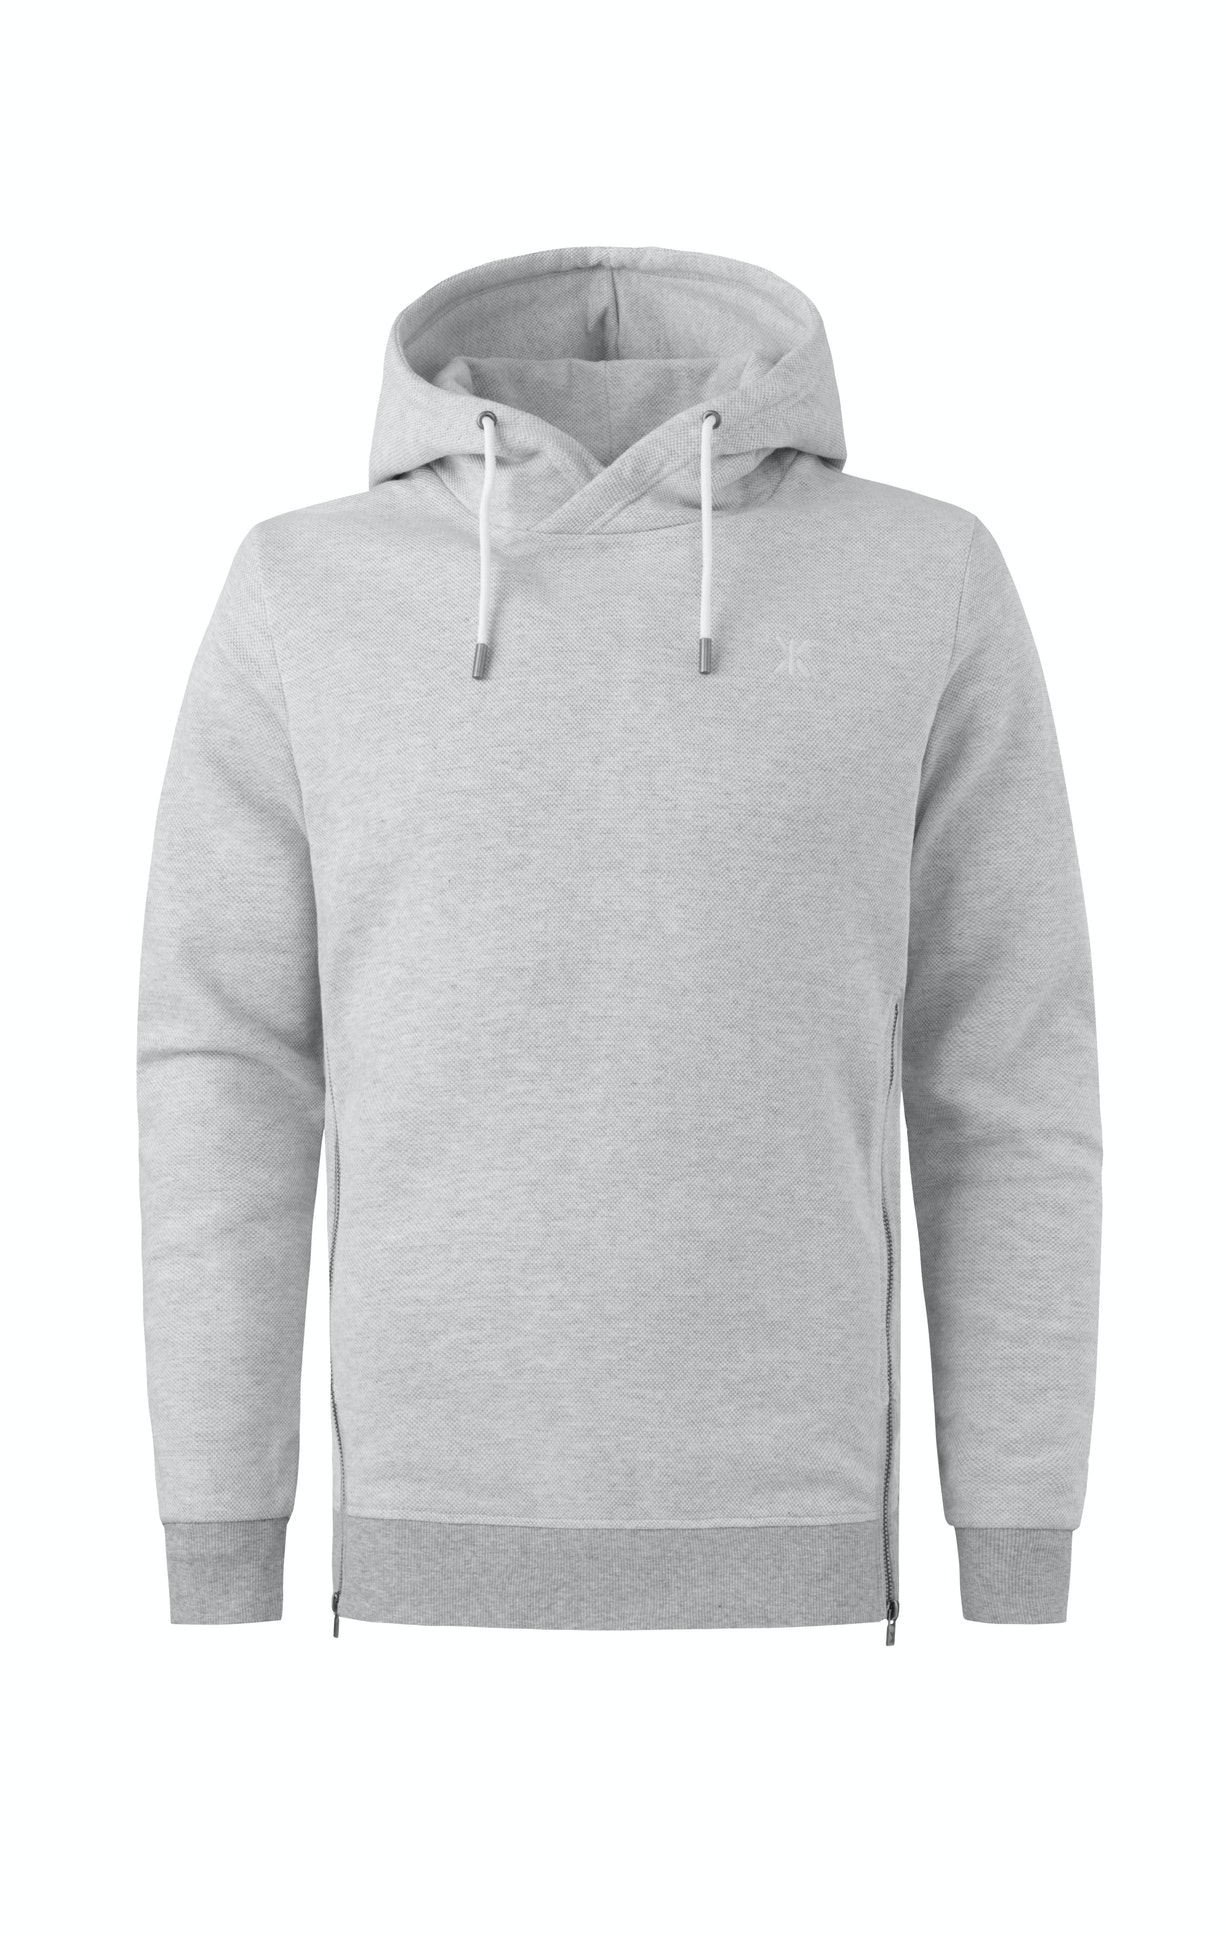 Slow Hoodie Nature Melange Grey Hoodie made of high quality cotton with a piqué structure on the outside and soft brushed inside lining, as well as metal side zipper details.